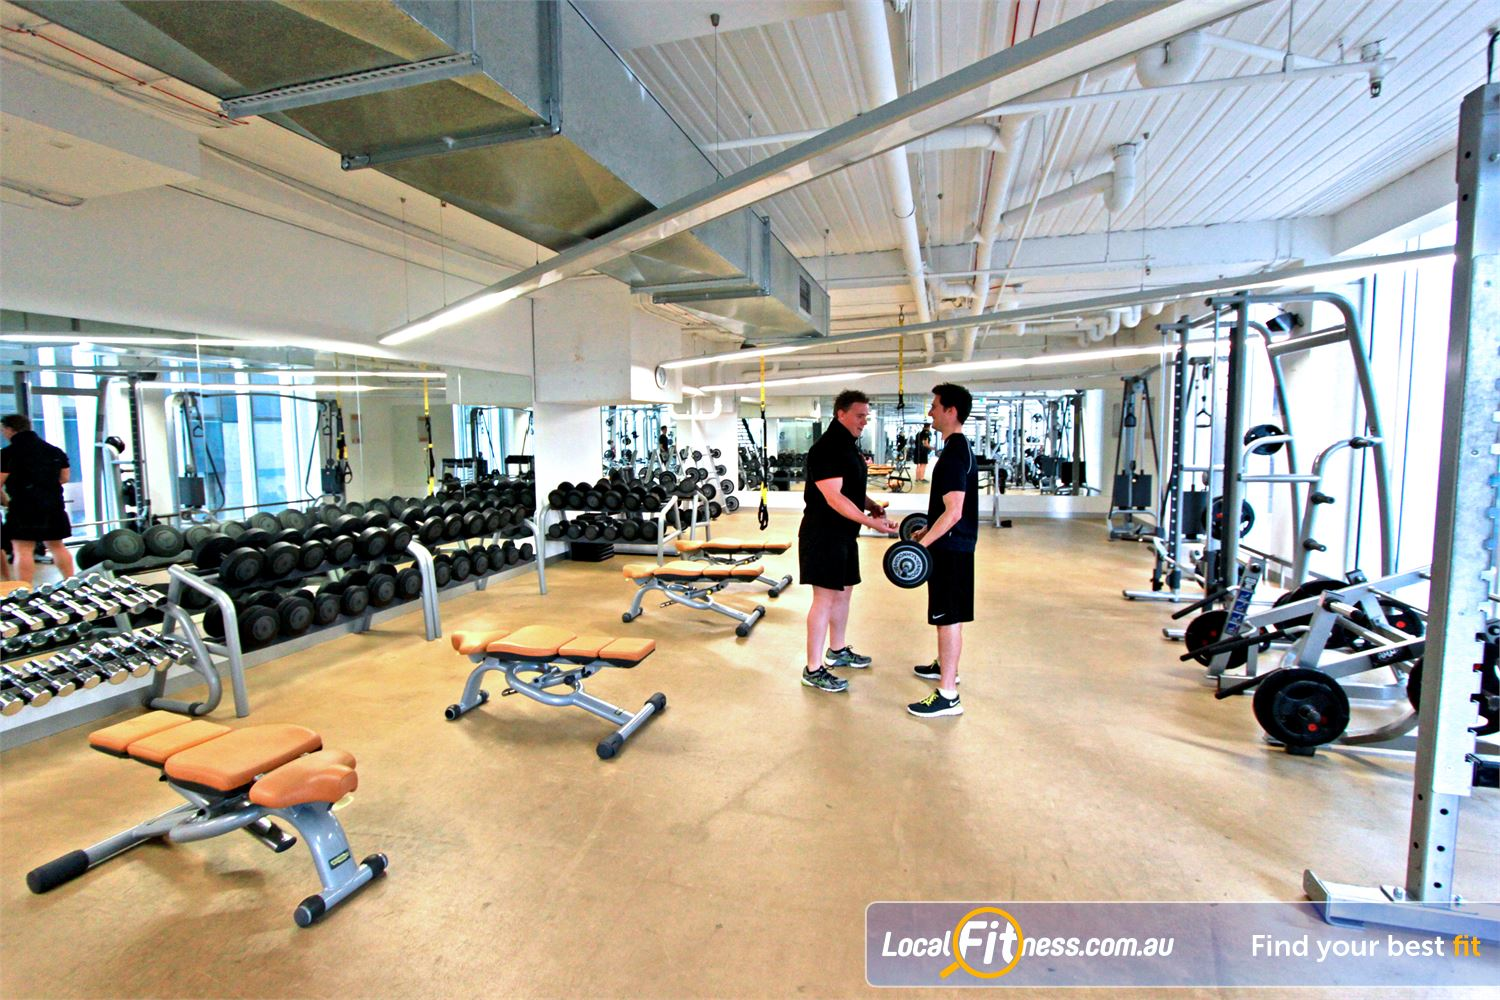 South Pacific Health Clubs Melbourne The spacious South Pacific Melbourne gym floor.